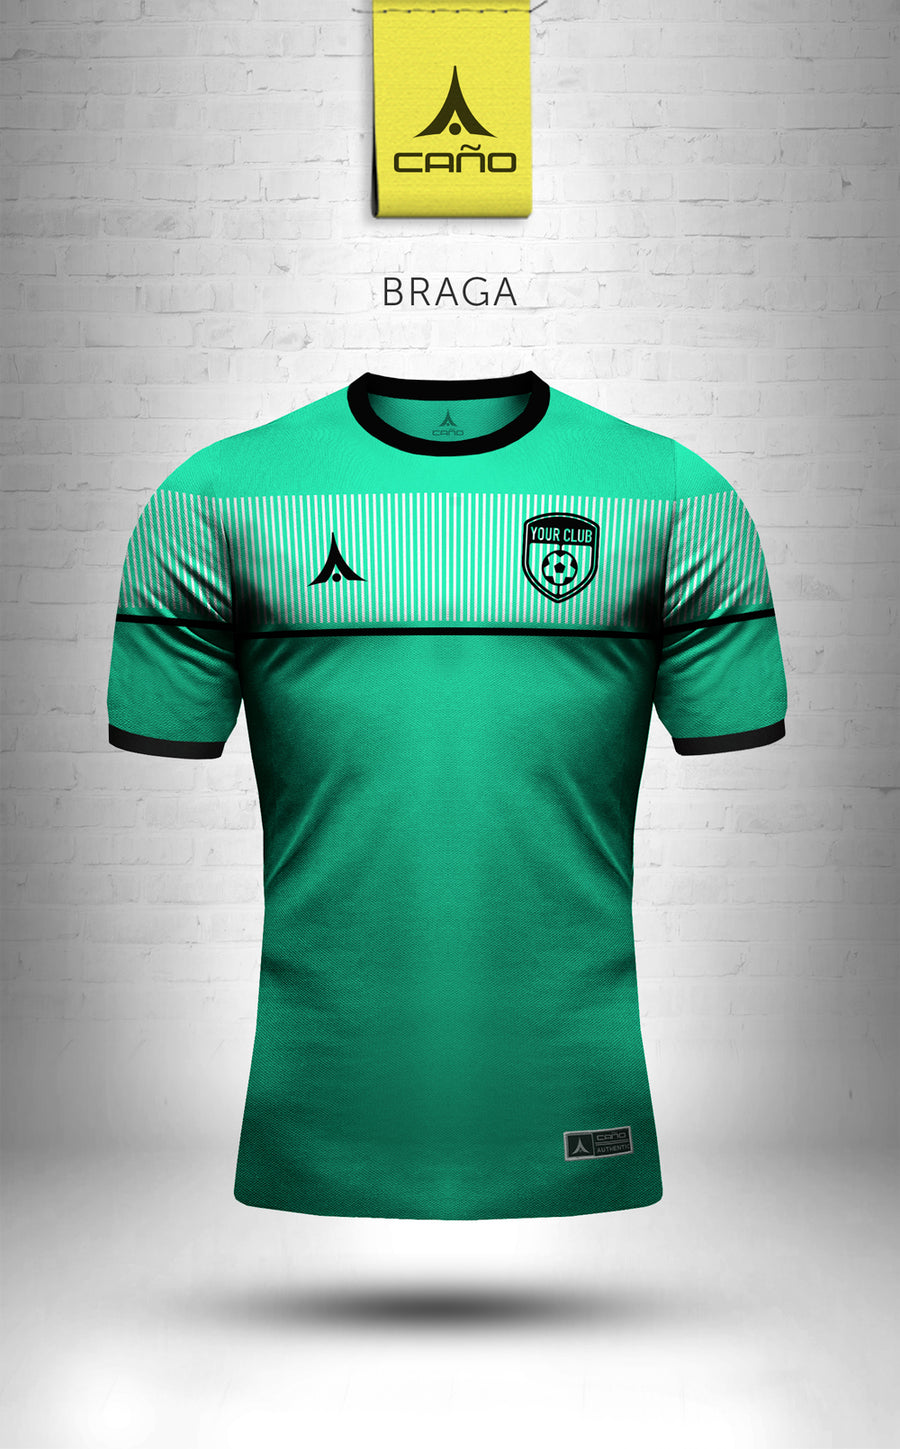 Braga in green/black